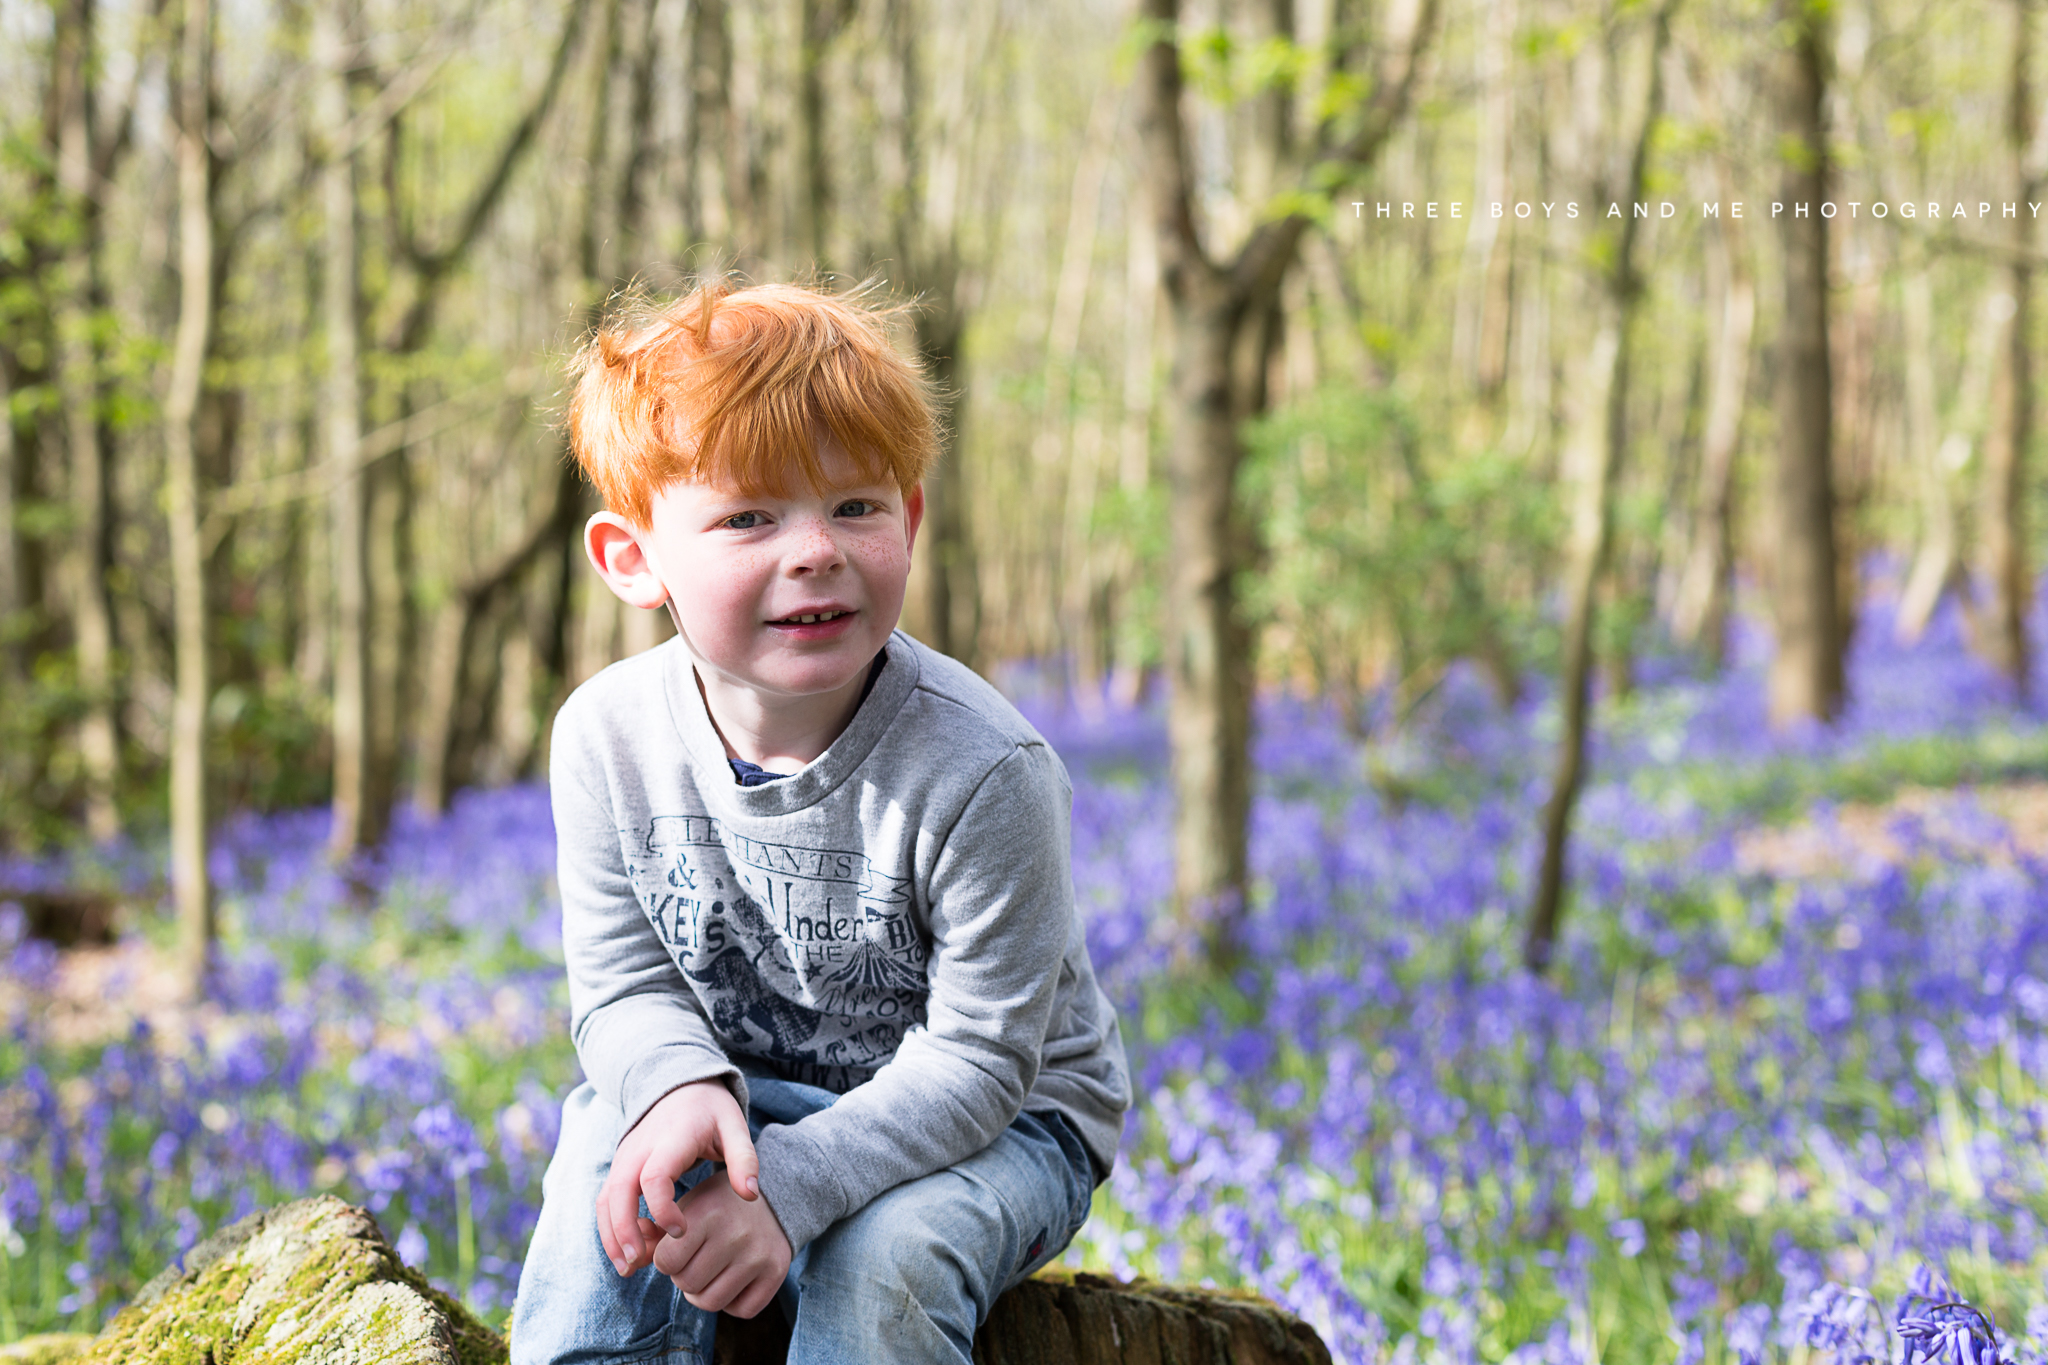 bluebell children photography, bluebell family photography, photoshoot in the bluebells